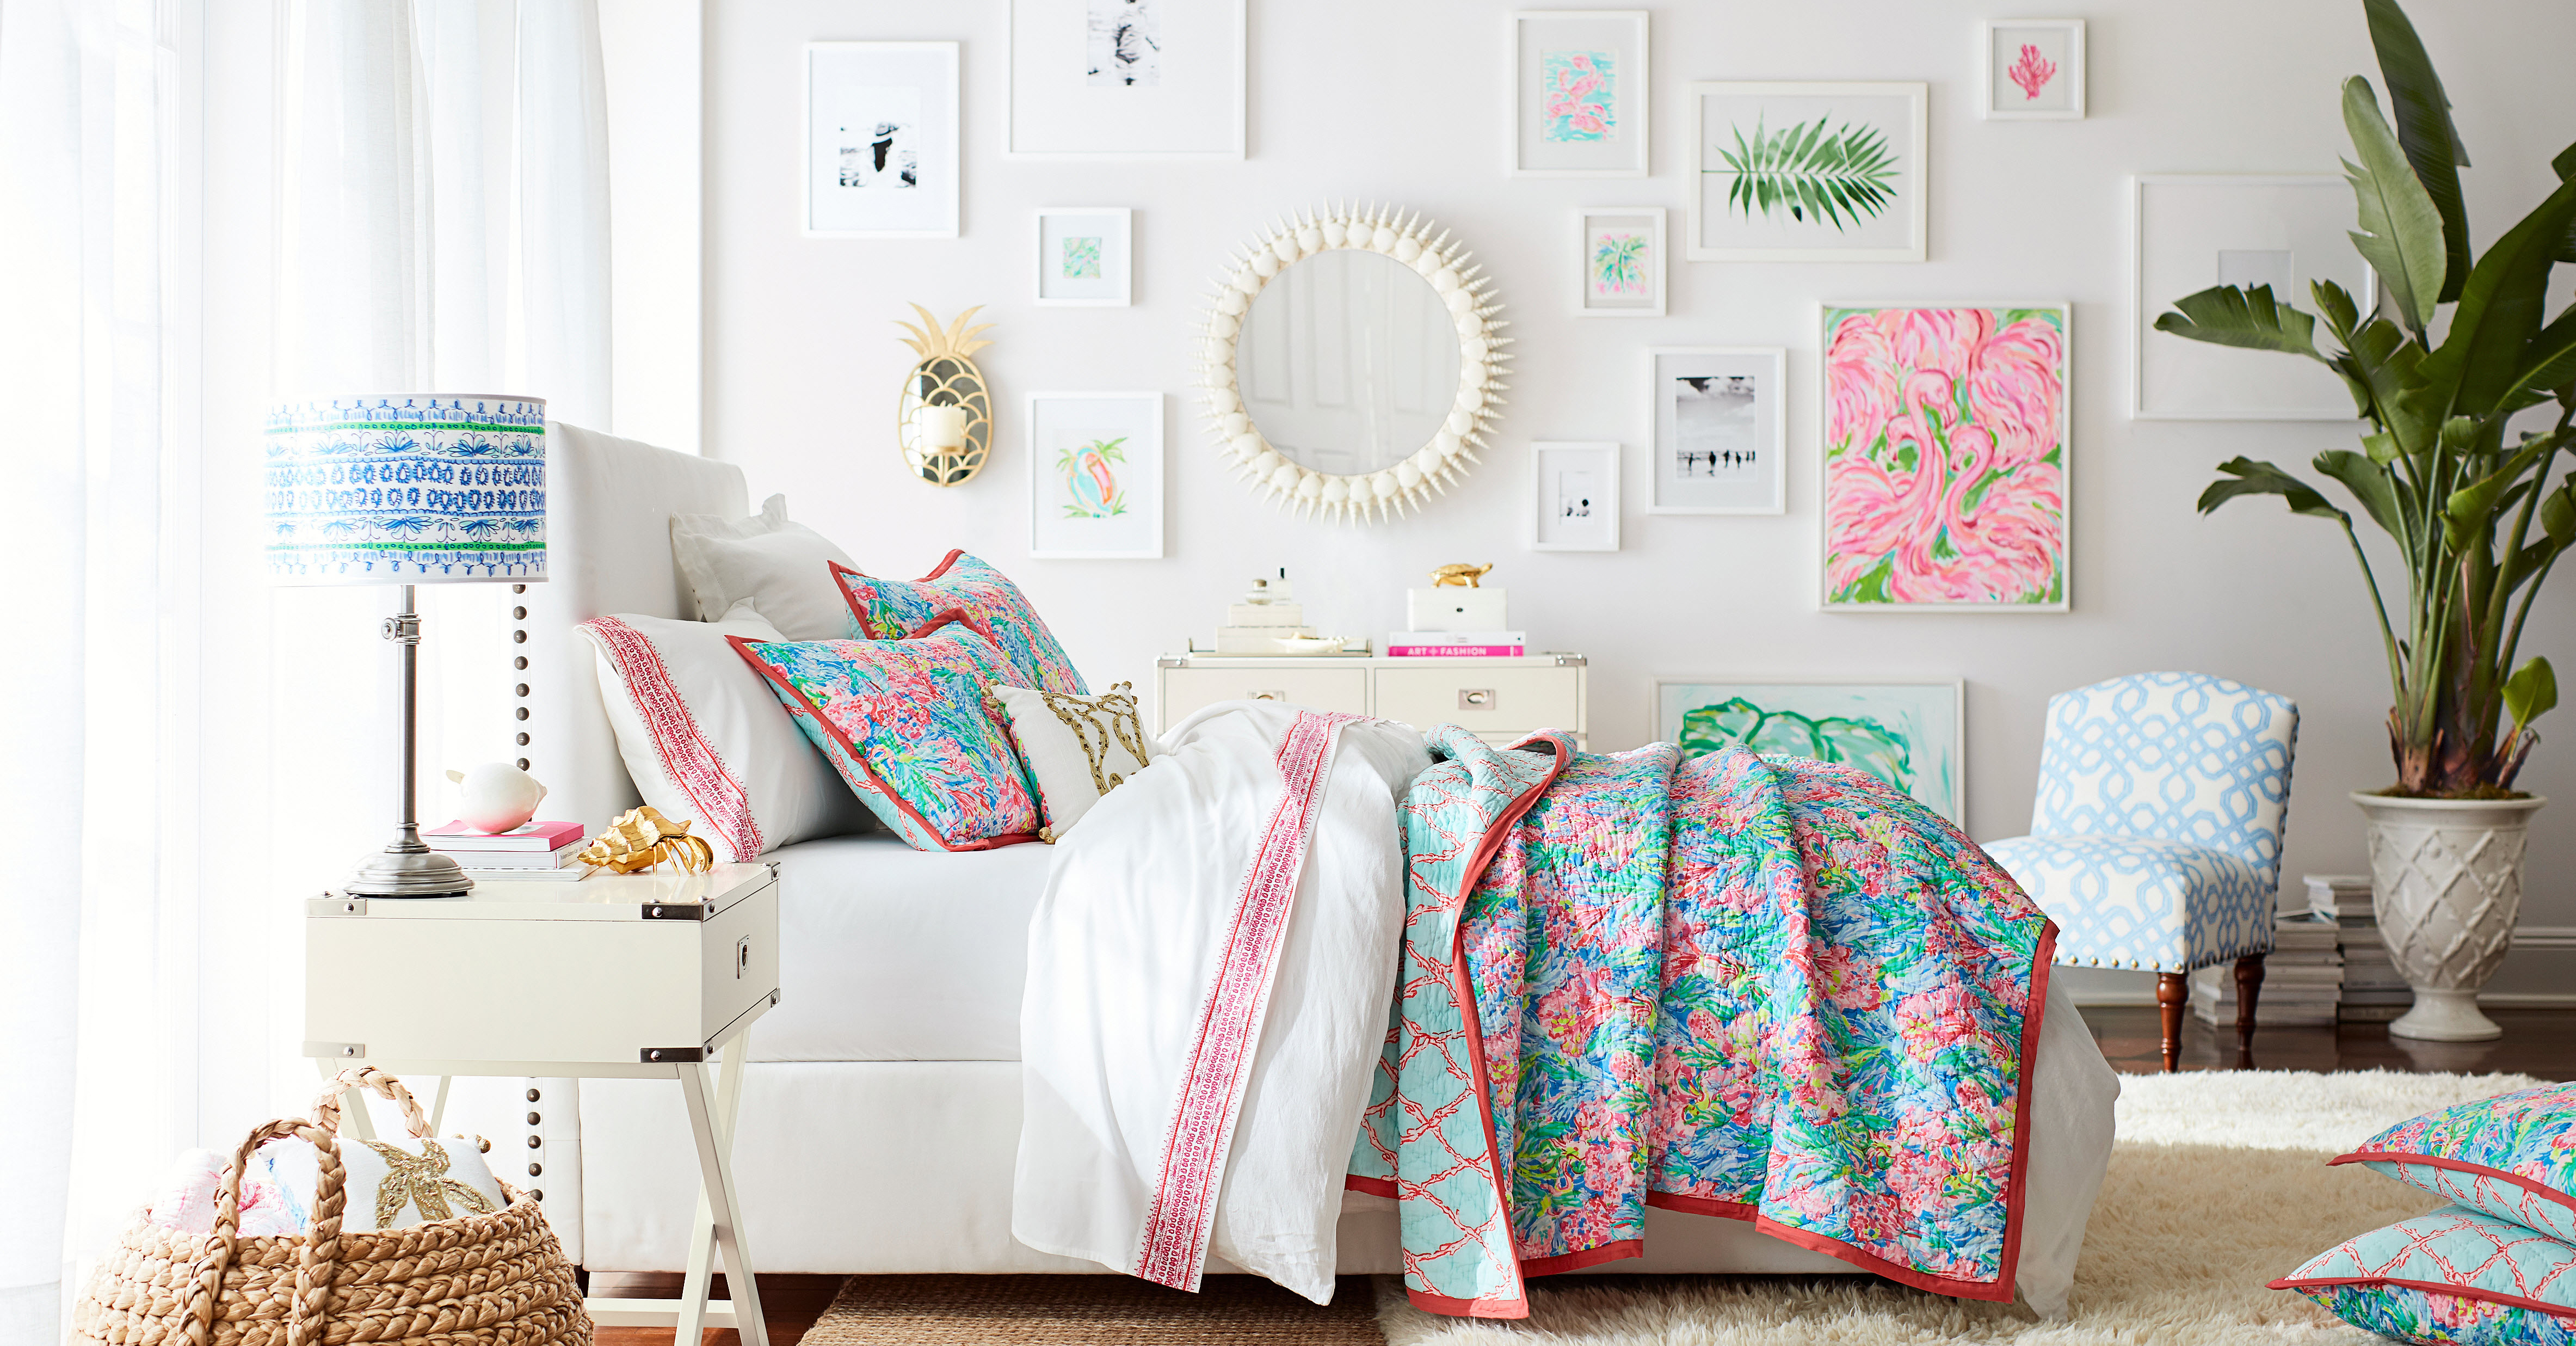 bed bedding iphone love pulitzer pin wallpaper lilly tai patterns we mai